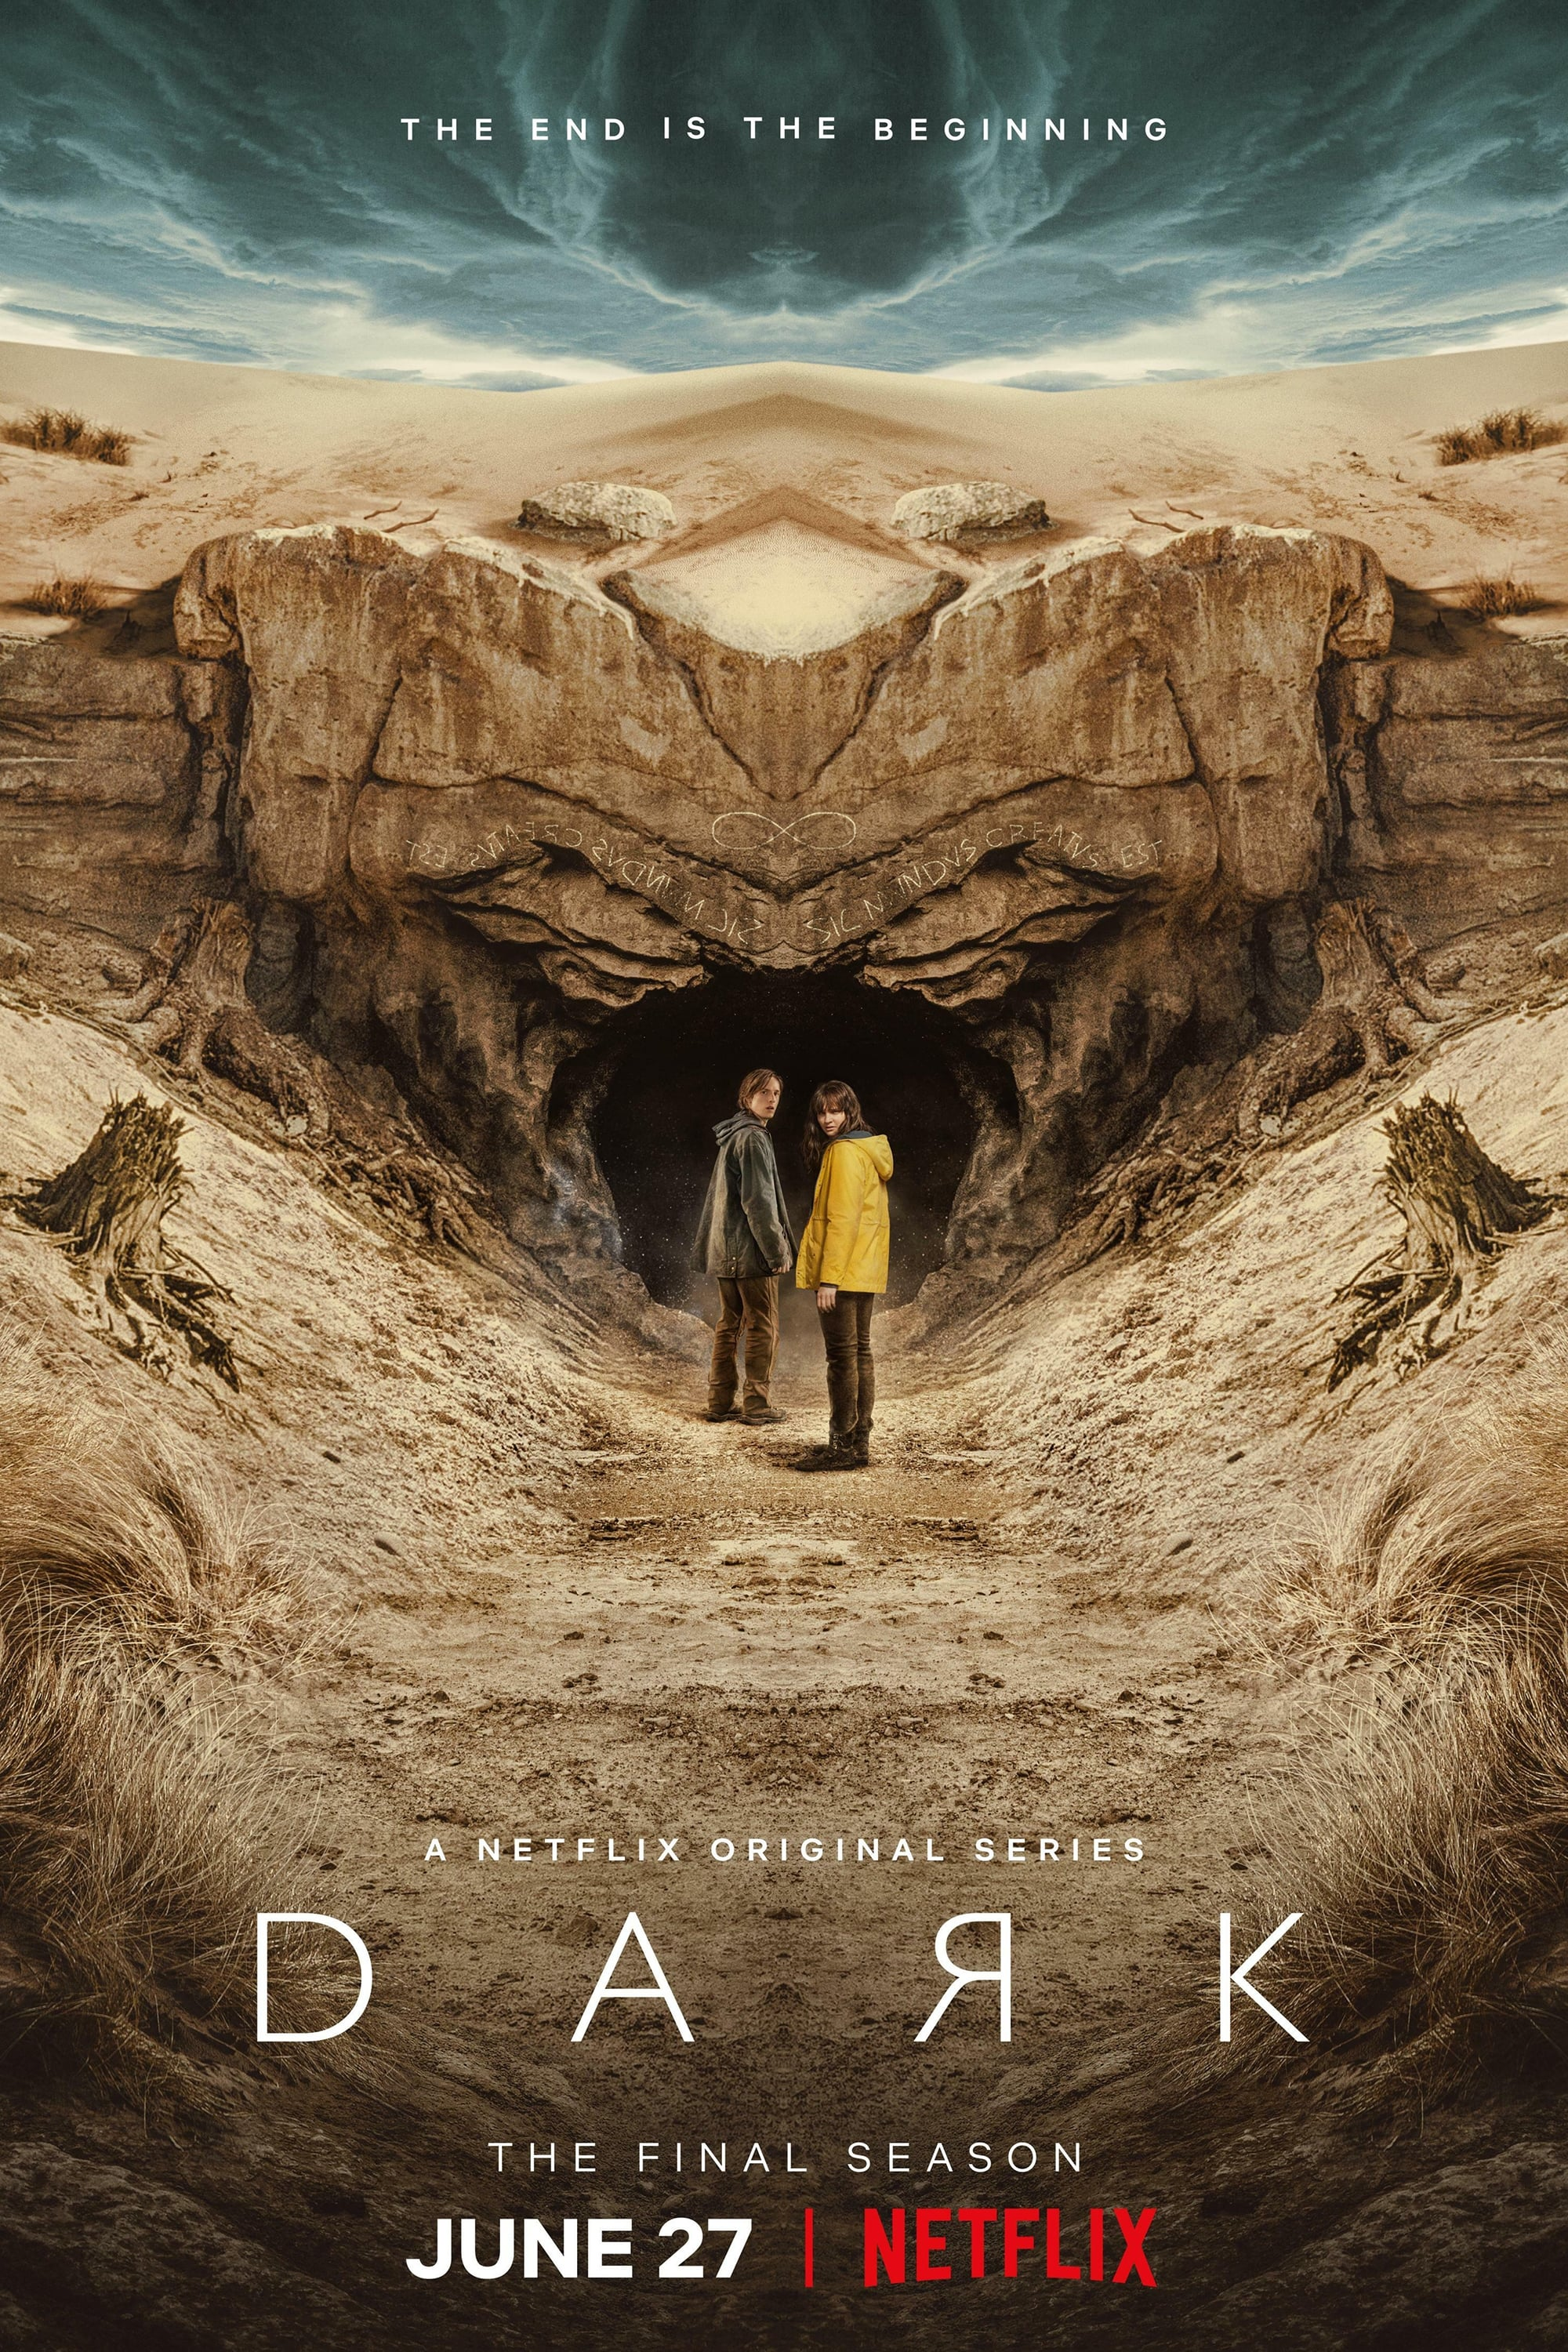 Dark S03 [German+English] | x264 NF WEB-DL | 1080p | 720p | 480p | Download Netflix Exclusive Series | Watch Online | GDrive | Direct Links